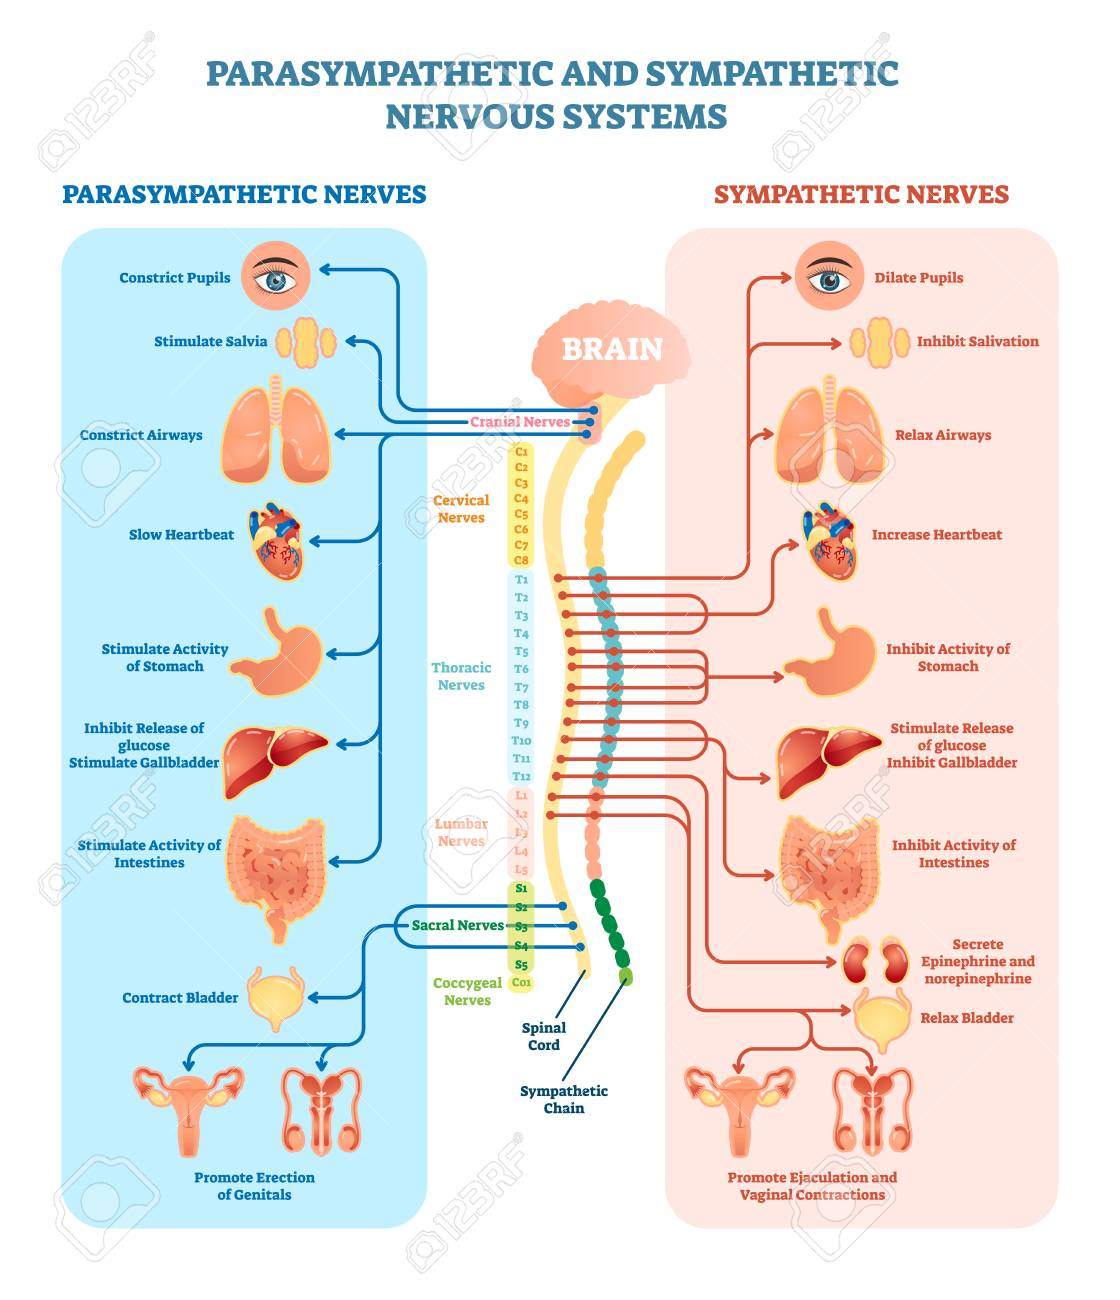 Human nervous system medical vector illustration diagram with parasympathetic and sympathetic nerves and all connected inner organs through brain and spinal cord. Educational information complete guide. - 96991220